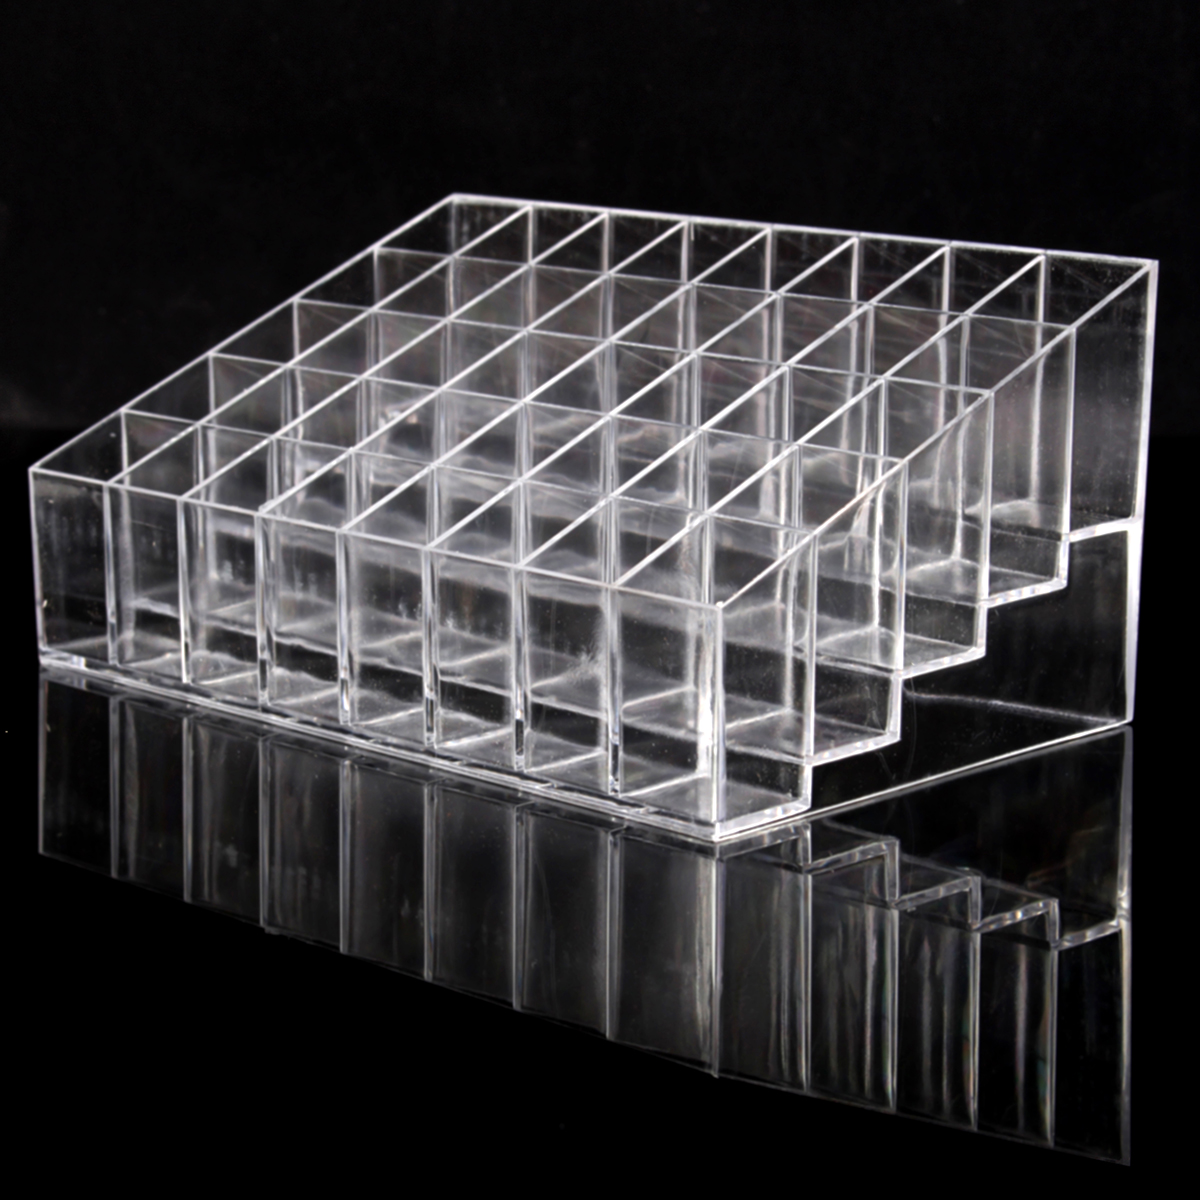 Clear Acrylic 40 Grids Lipstick Holder Stand Display Cosmetic Makeup Organizer Case